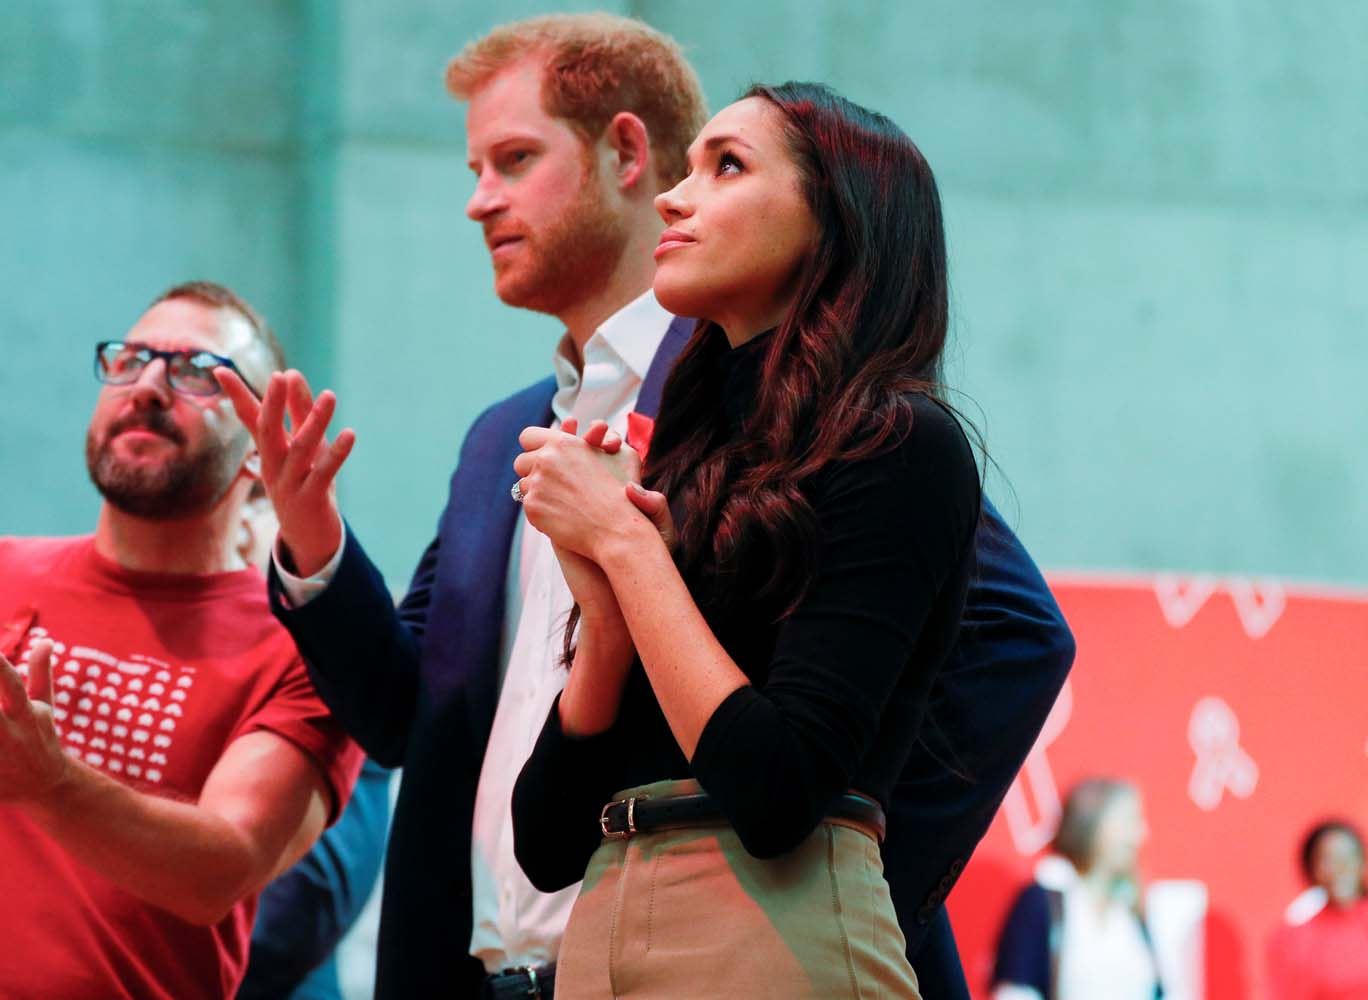 Britain's Prince Harry and his fiancee Meghan Markle visit the Terrence Higgins Trust World AIDS Day charity fair at Nottingham Contemporary in Nottingham, Britain, December 1, 2017. REUTERS/Adrian Dennis/Pool